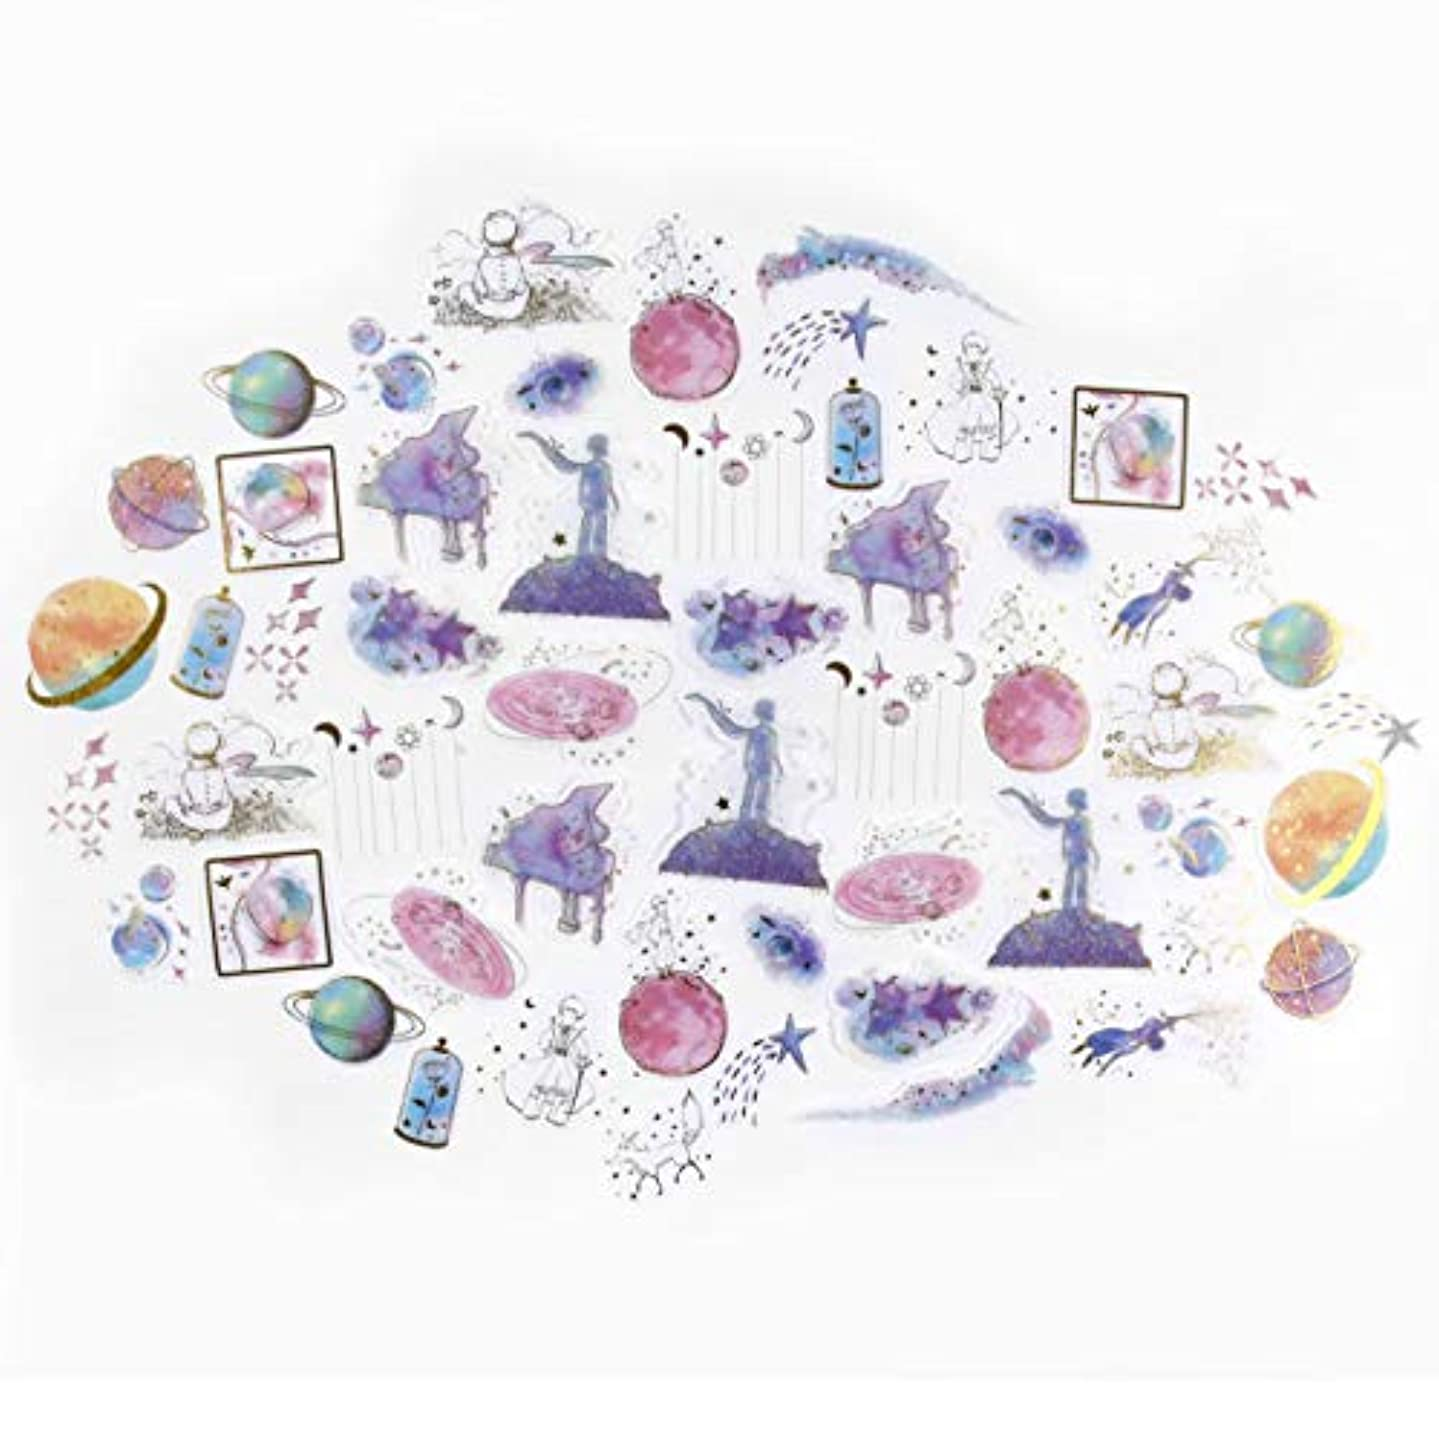 DIY Decorative Sticker, Girl Praying Series hot Stamping Silver Sticker Bag Series Washi Sticker for Diary Album Notebook Scrapbook Lifelog Cute Stationery Sticker, Pack of 60pc (#1)